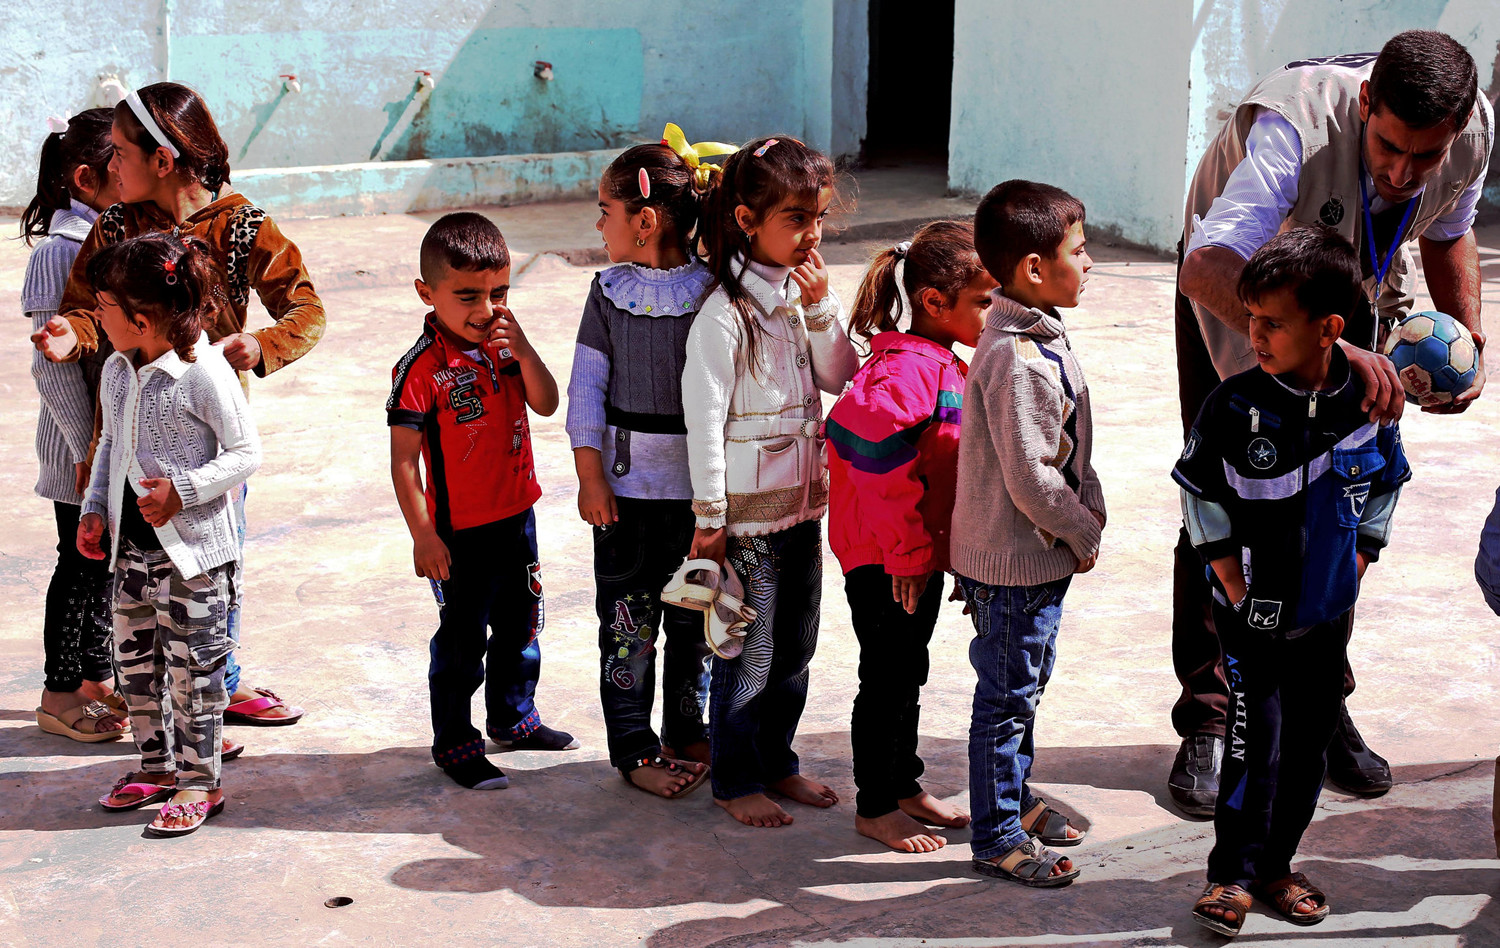 Refugee children assemble at a camp in Iraqi Kurdistan. (Photo by Josh Zakary, Creative Commons)